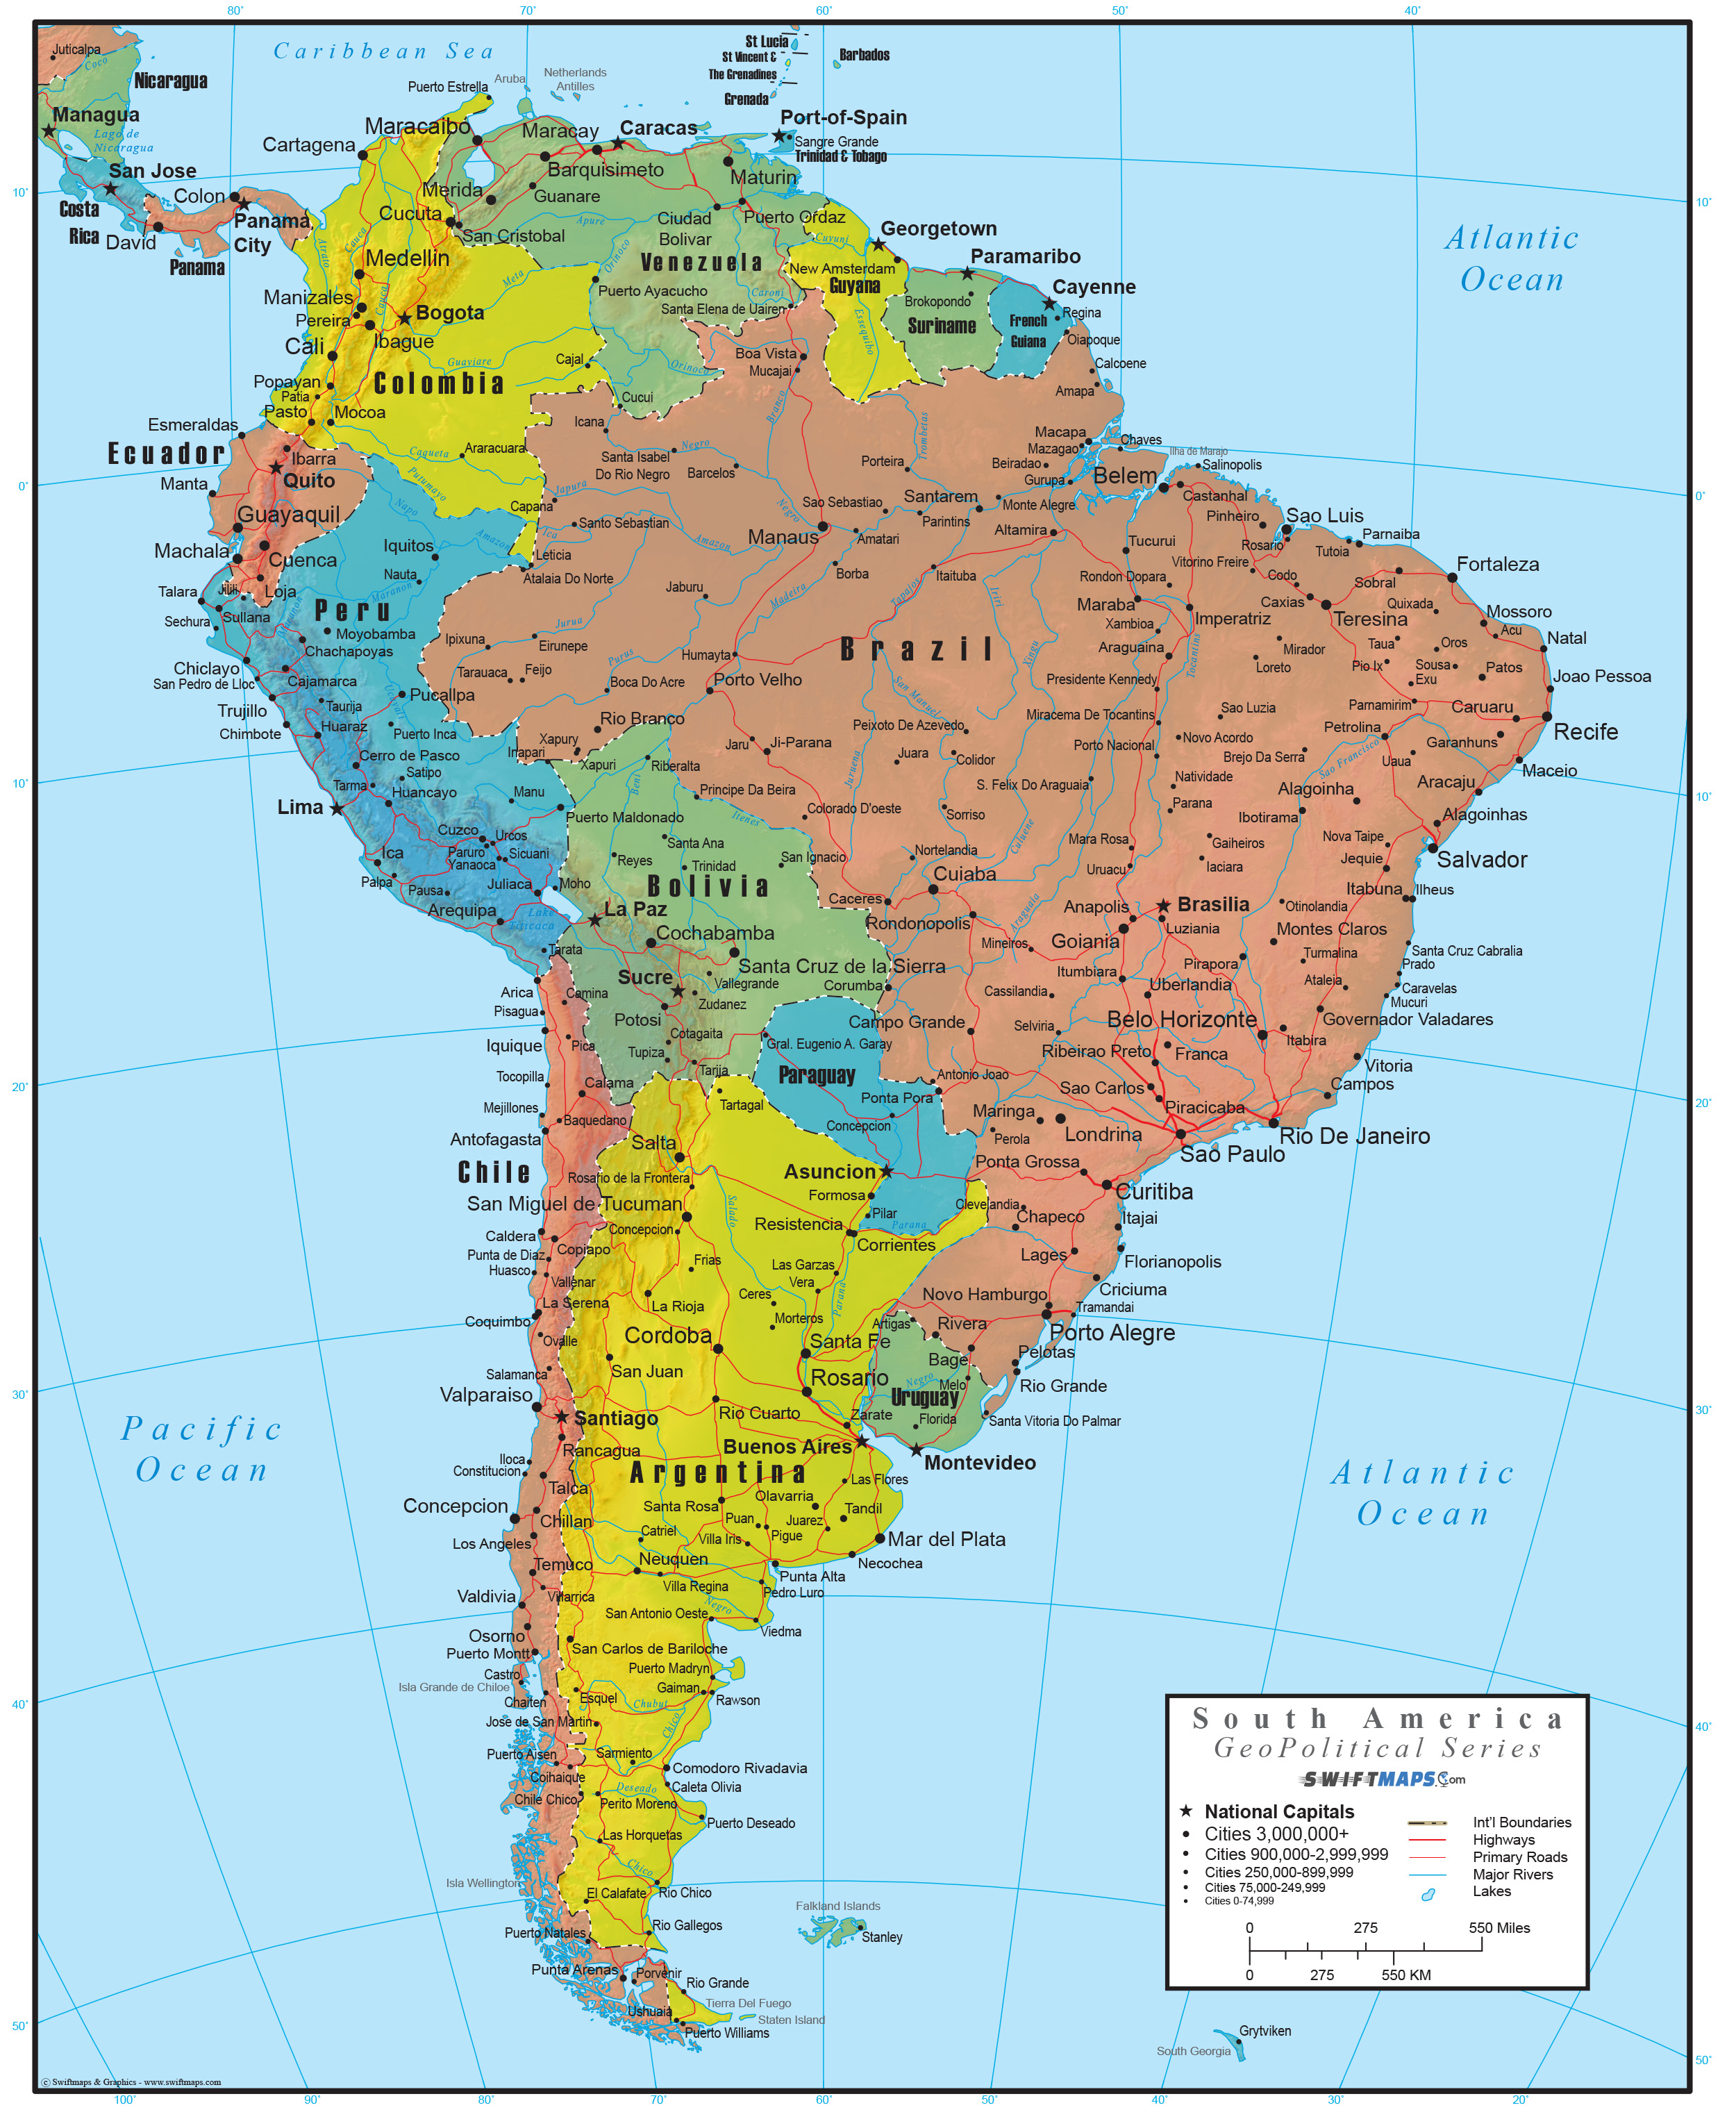 South America Wall Map GeoPolitical Deluxe Edition